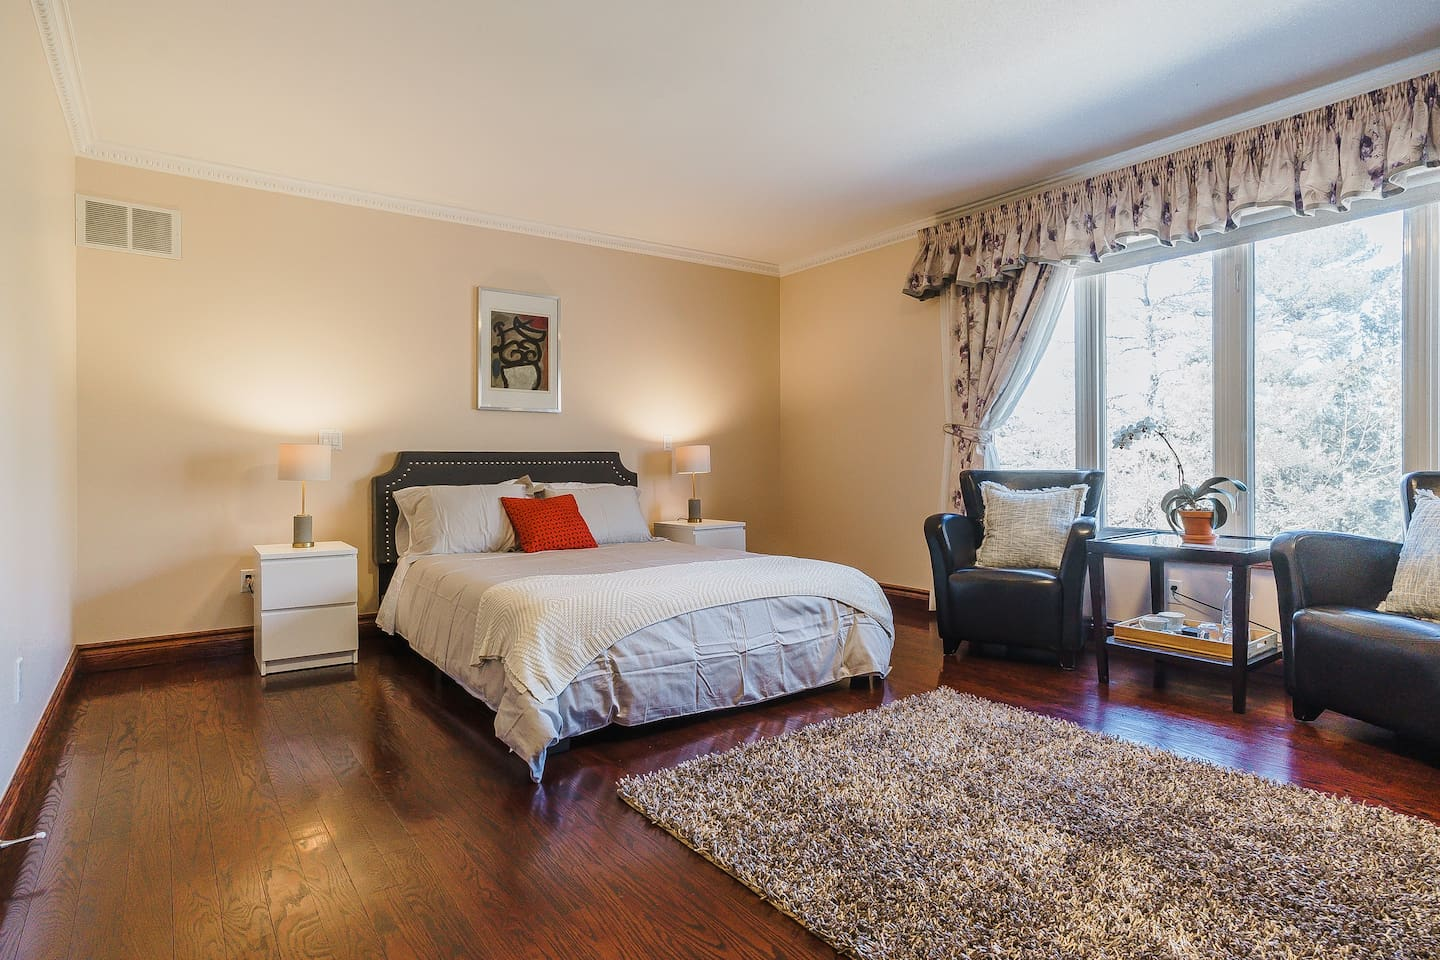 Premium Master Suite. Huge airy suite to kick back and relax.